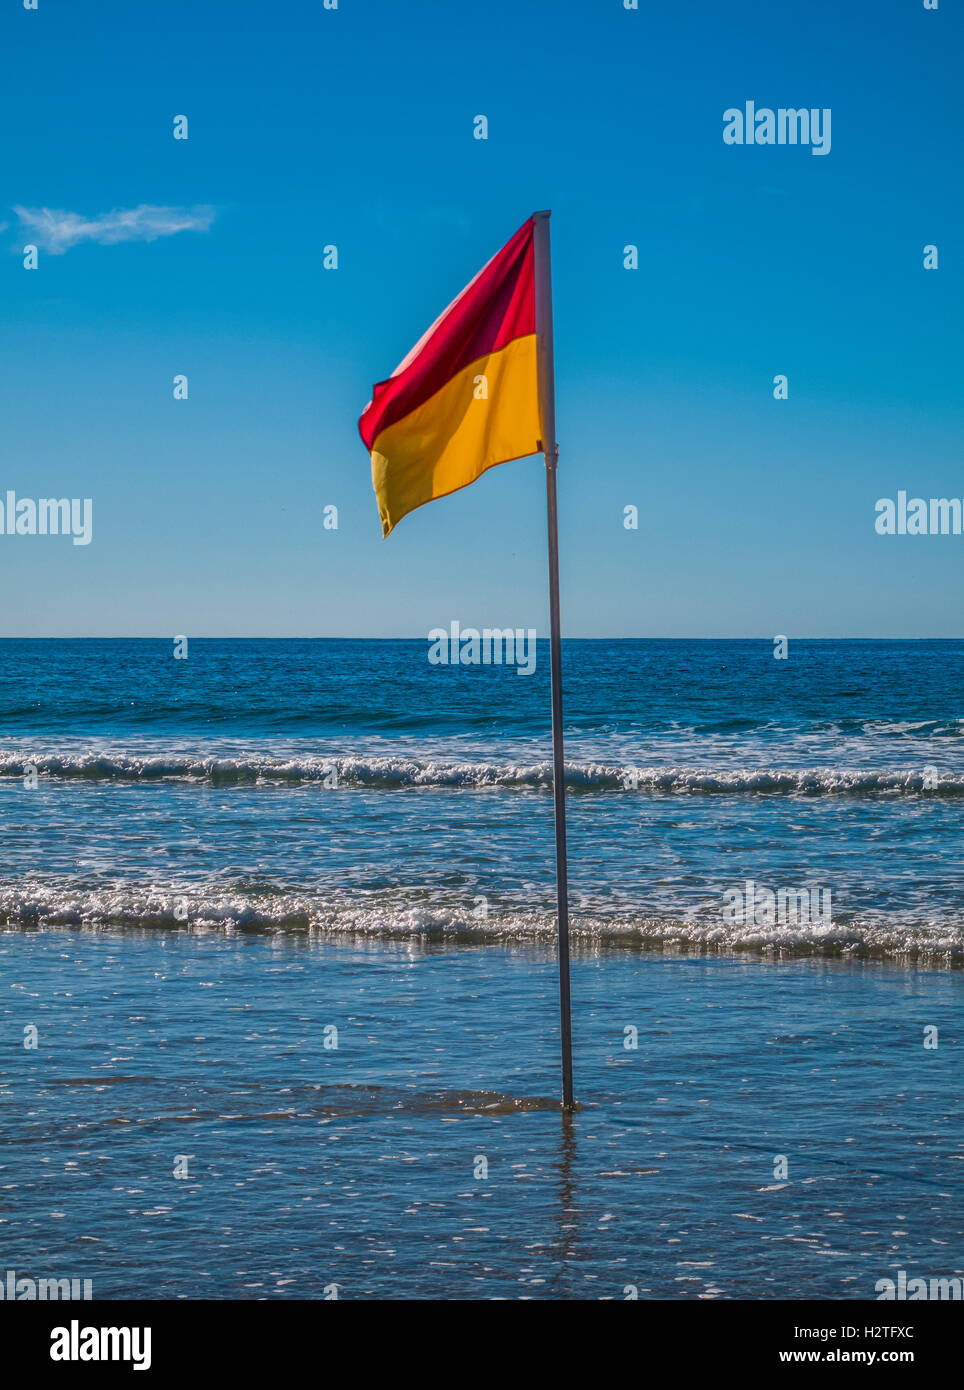 Beachscape with red and yellow flag indicating safe, patrolled beach in Australia - Stock Image